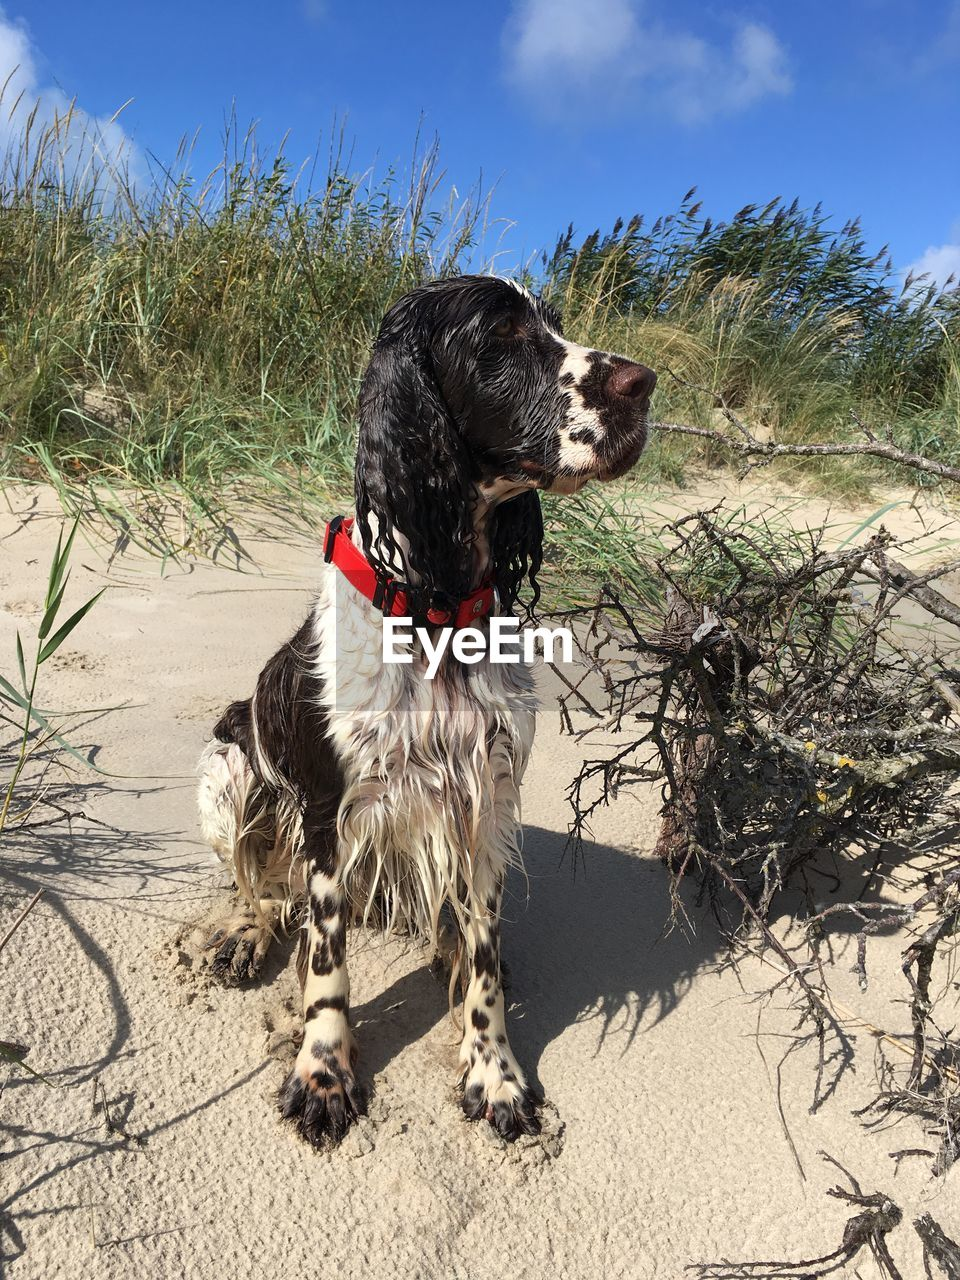 canine, dog, one animal, mammal, pets, domestic animals, domestic, animal, animal themes, vertebrate, land, sand, nature, sunlight, plant, sky, no people, day, beach, collar, outdoors, mouth open